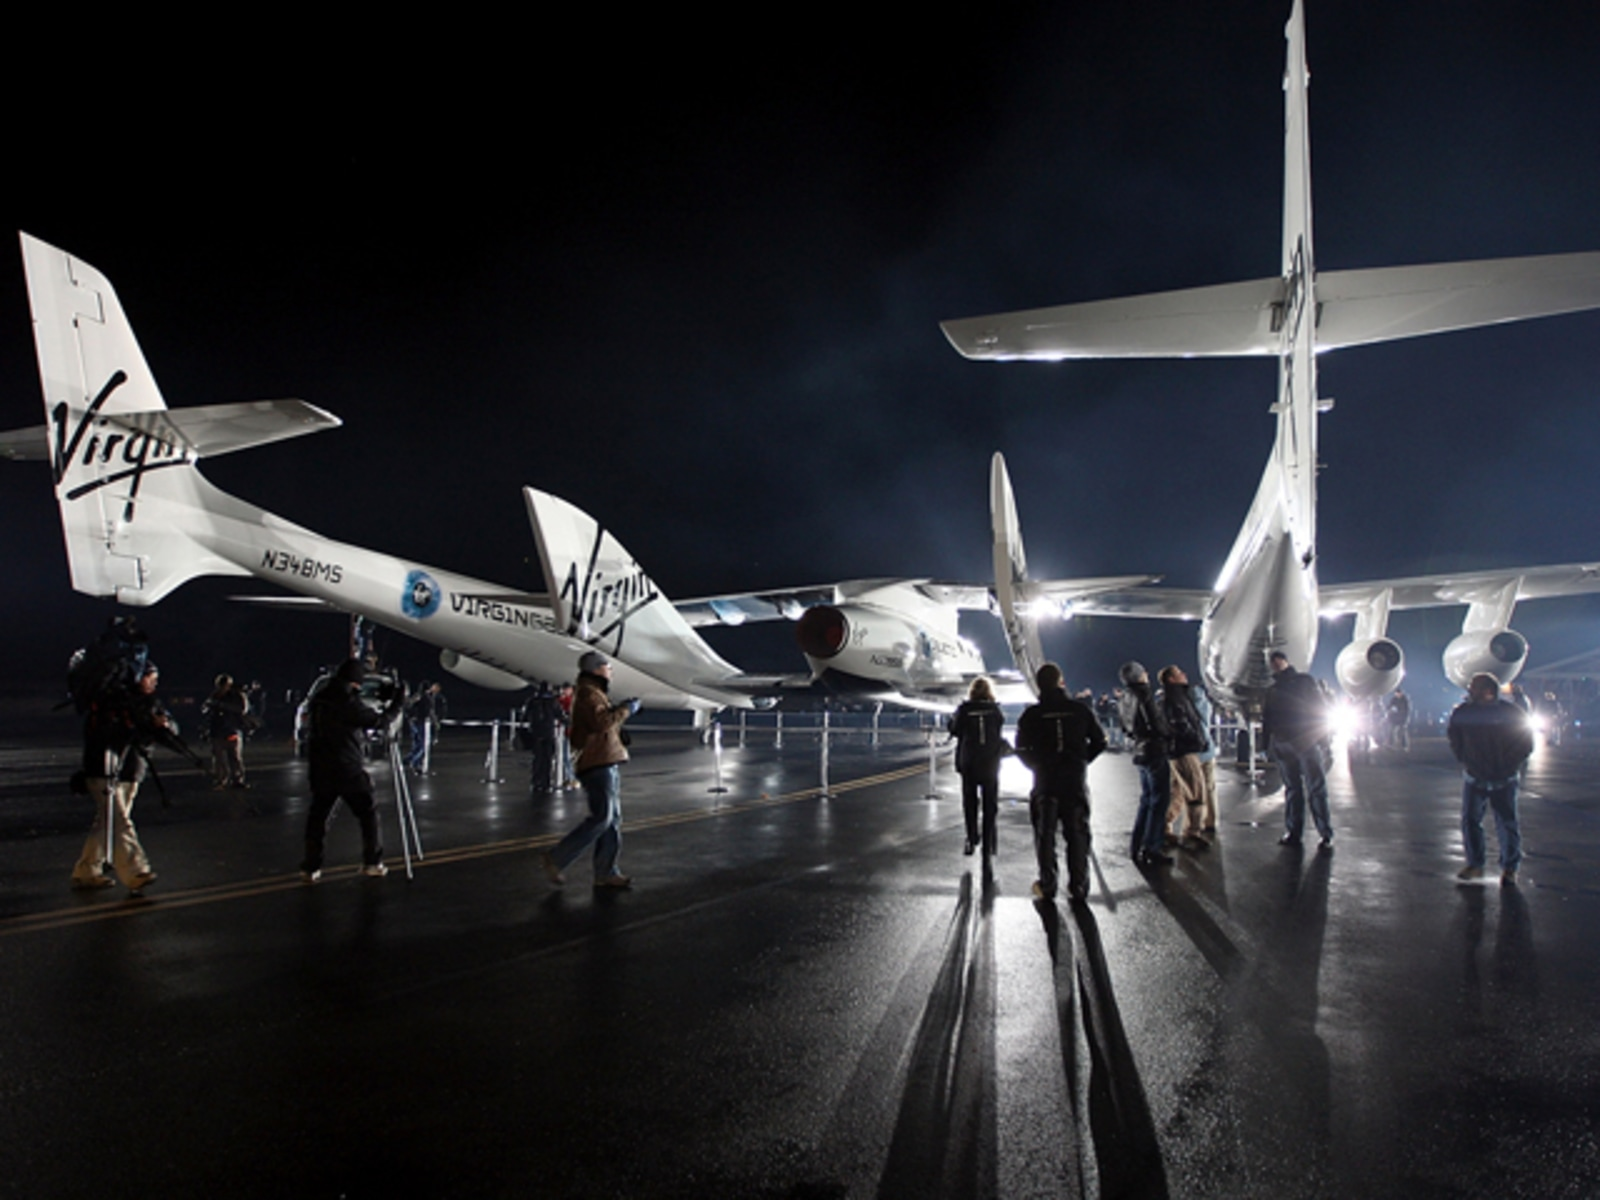 Image: Virgin Galactic's SpaceShipTwo, First Commercial Spacecraft, Unveiled In CA